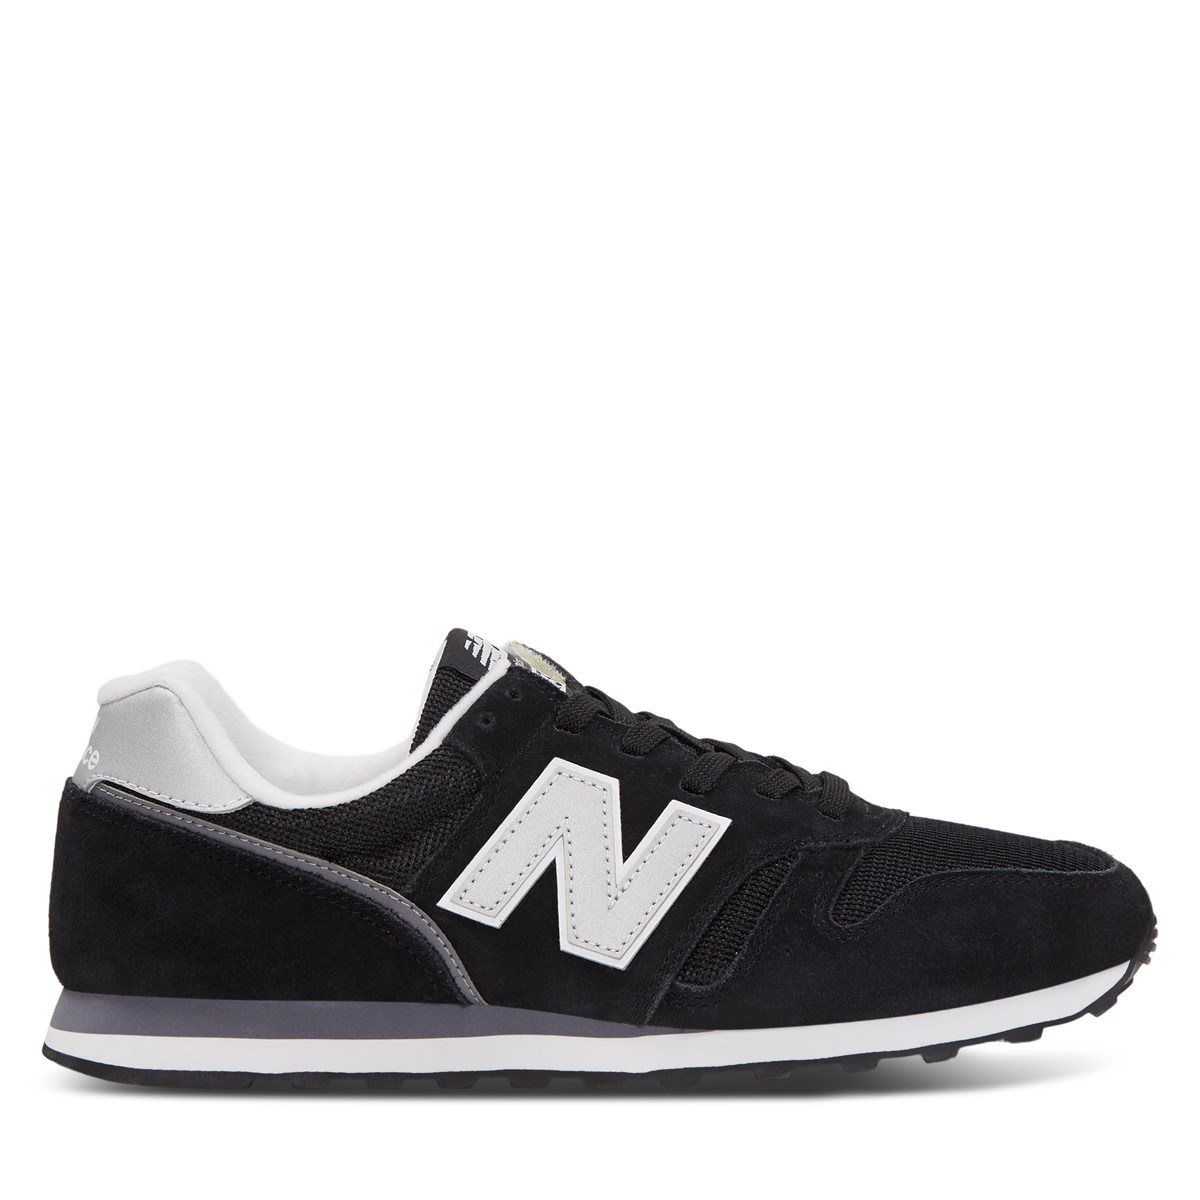 Men's 373 Sneakers in Black